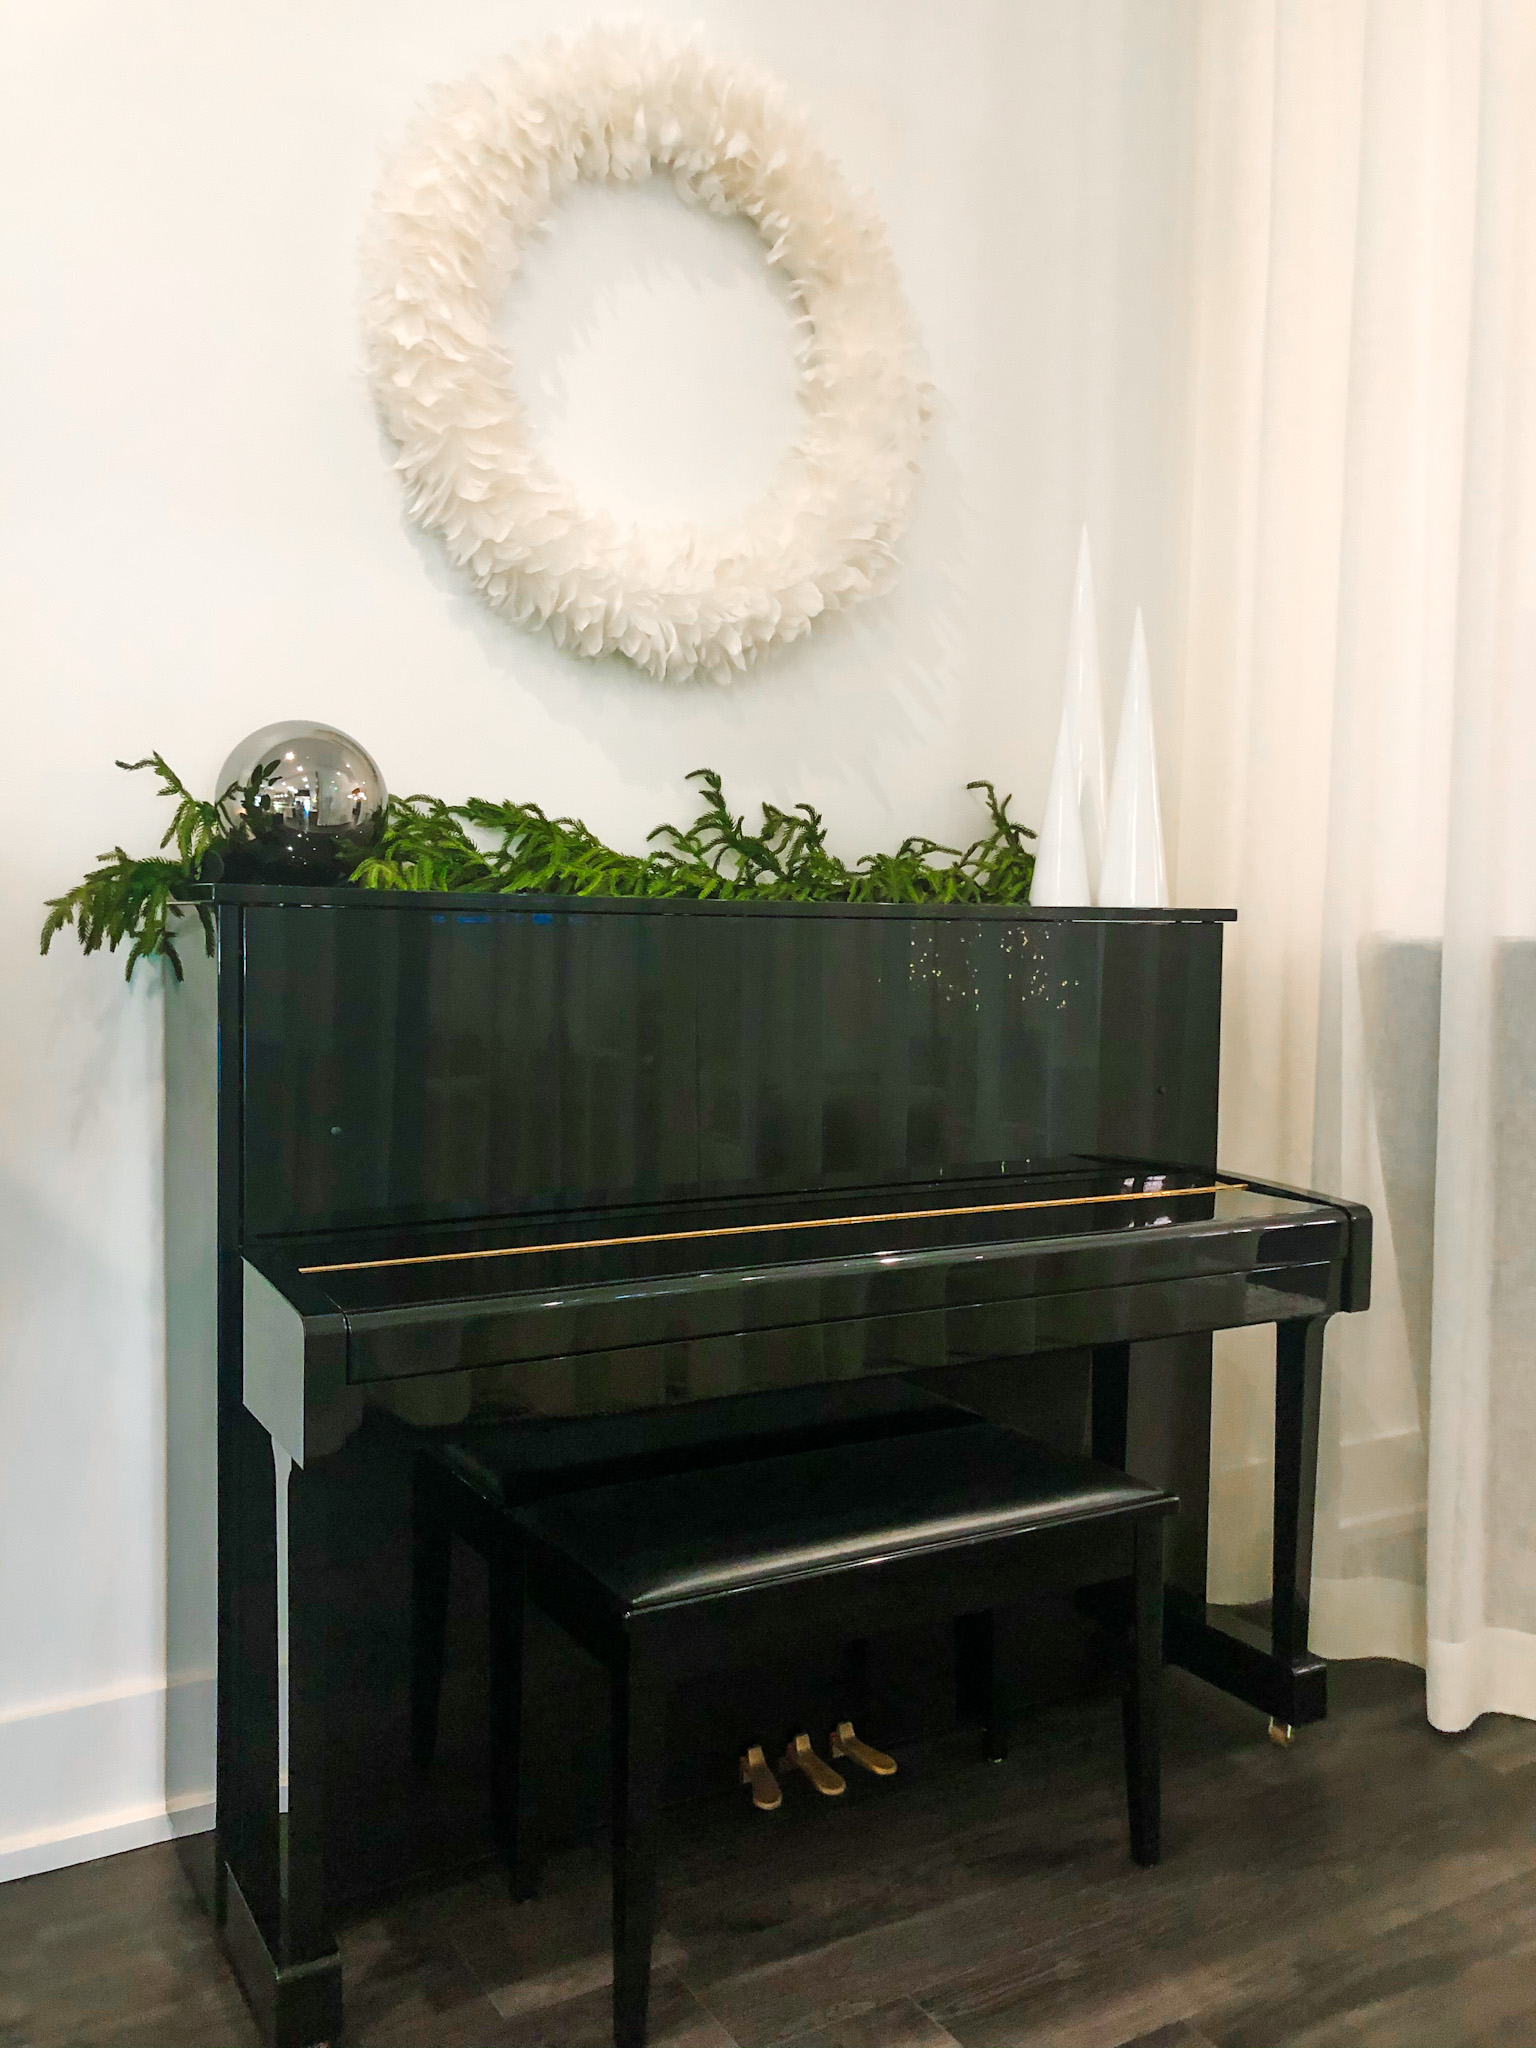 evolve christmas wreath and piano